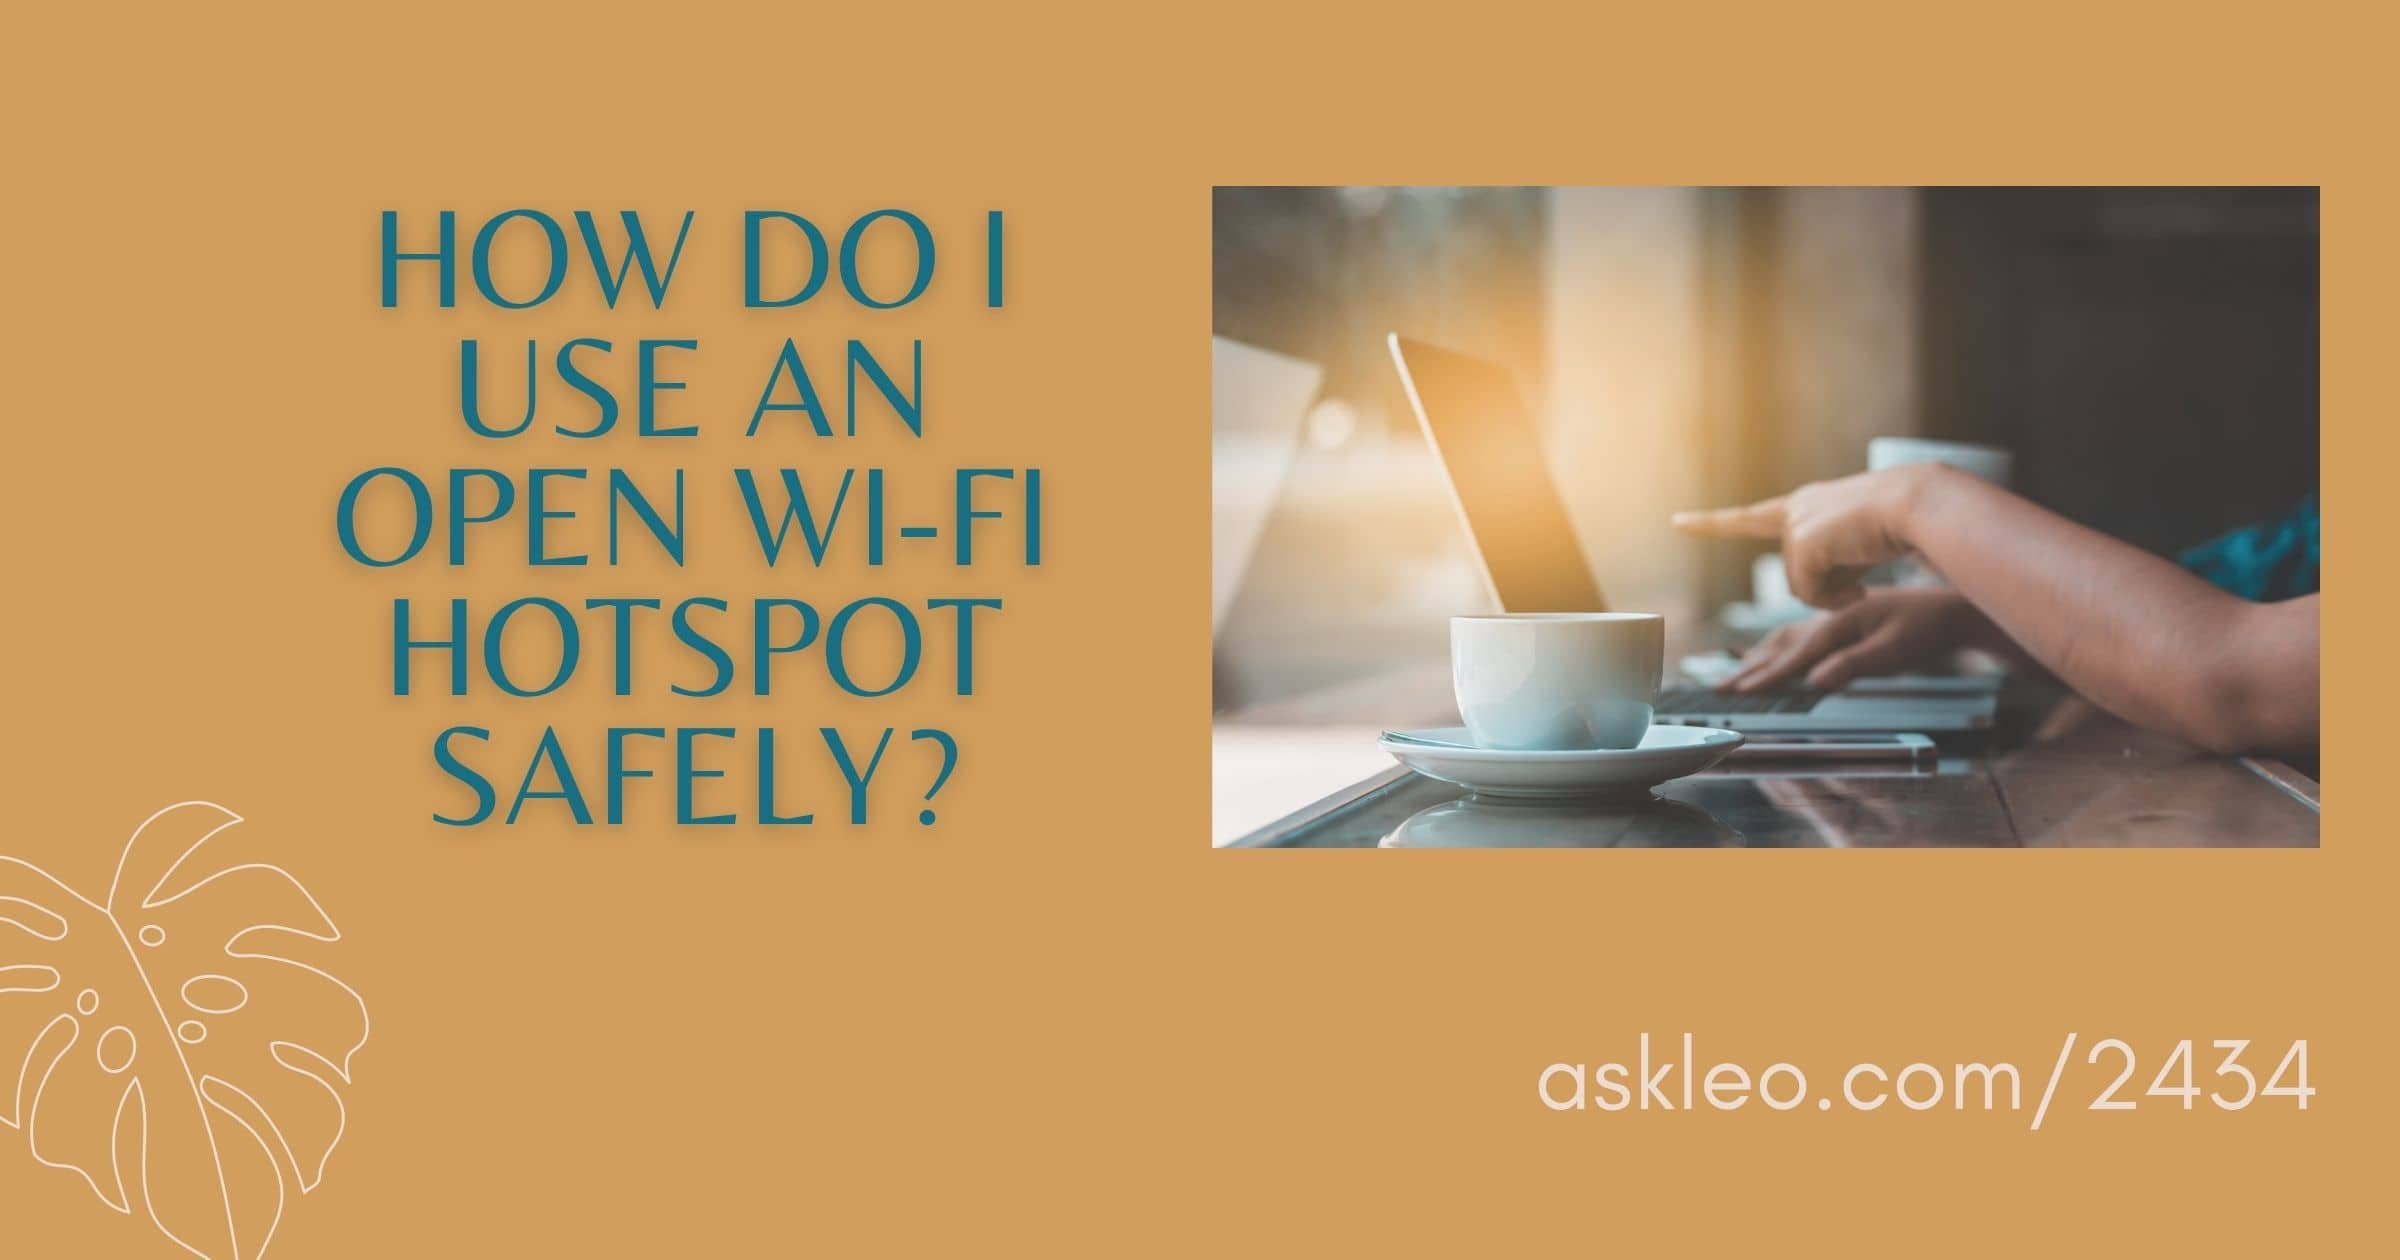 How Do I Use an Open Wi-Fi Hotspot Safely?